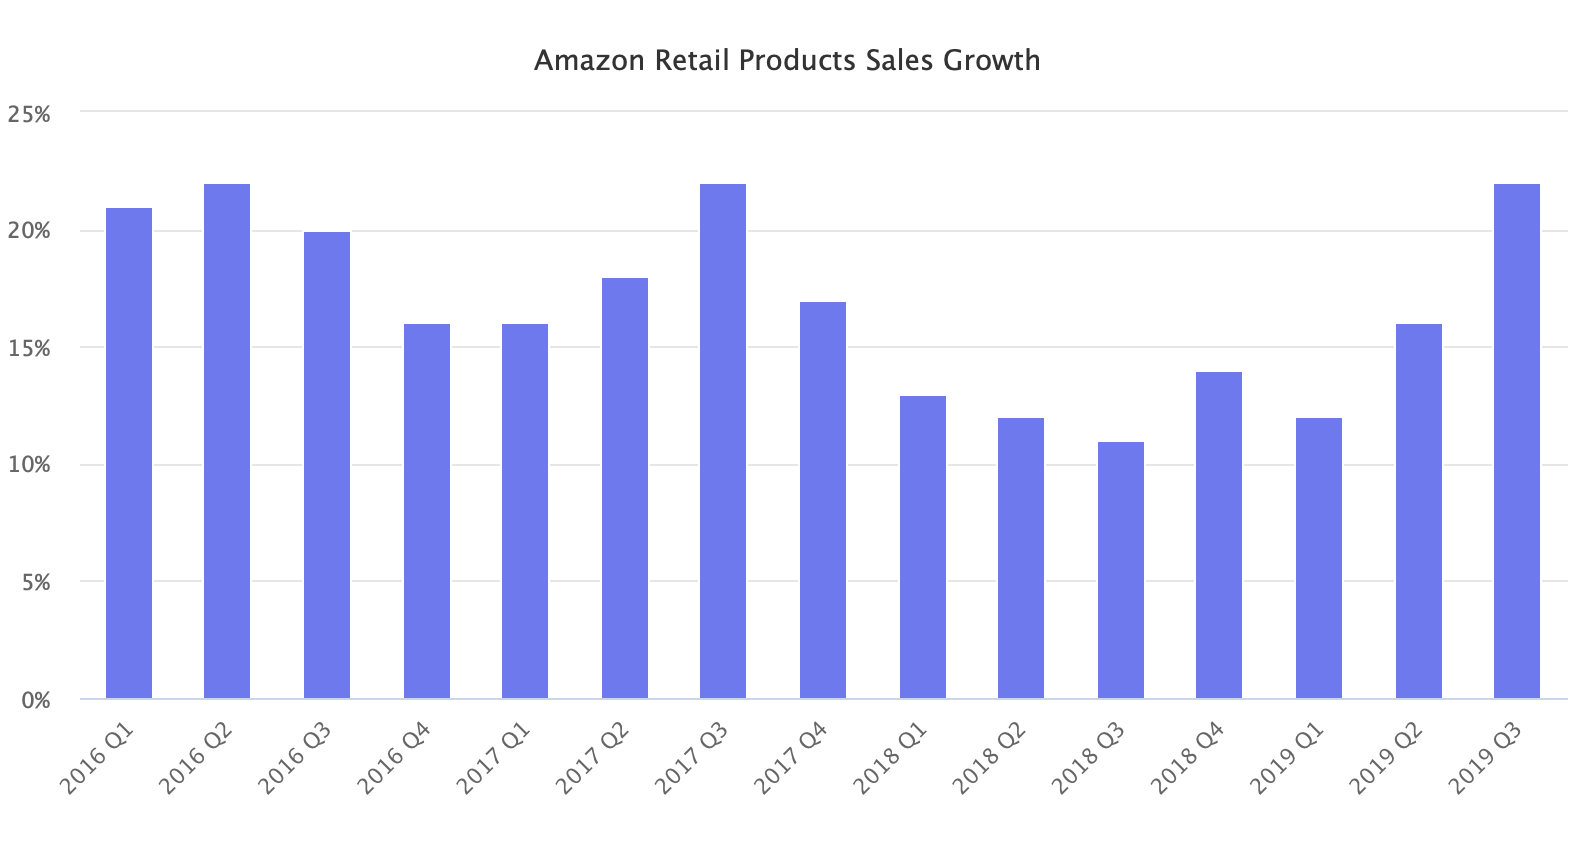 Amazon Retail Products Sales Growth